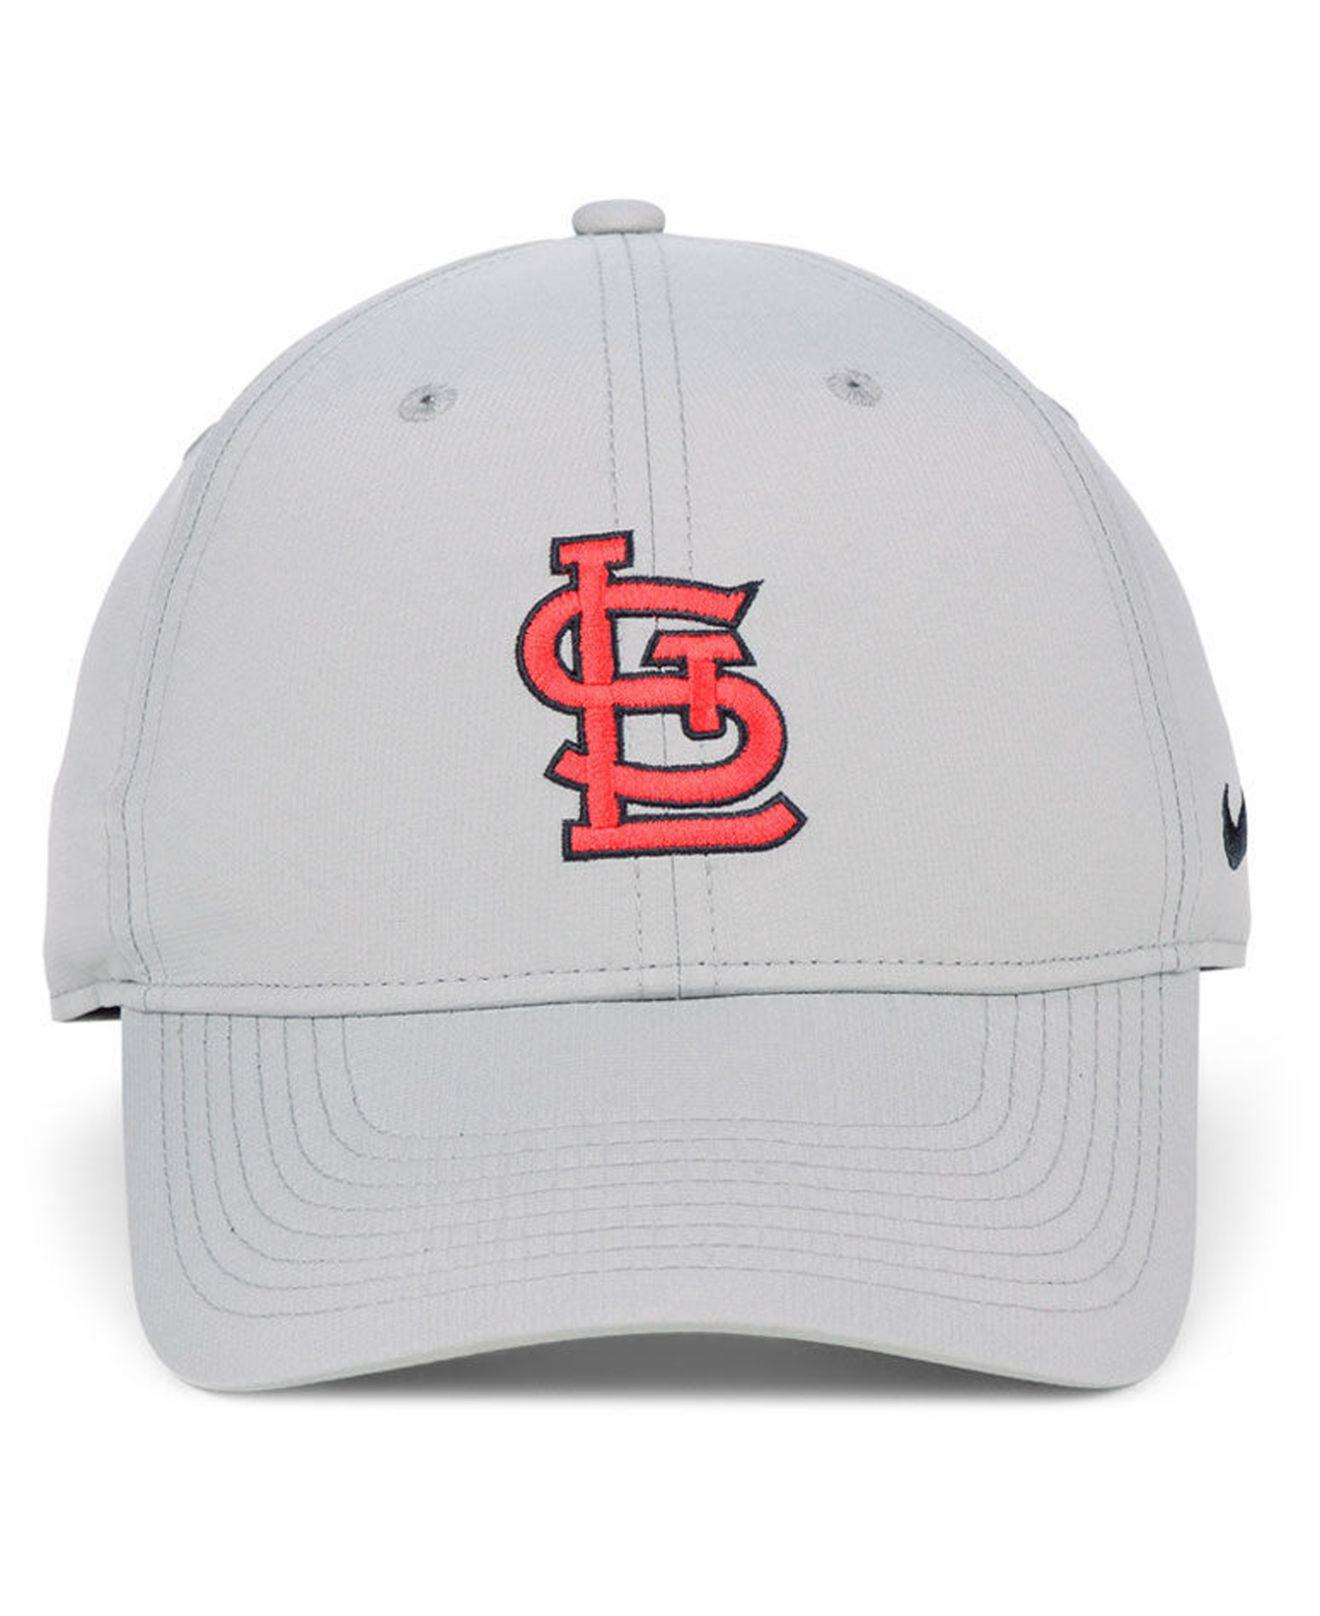 8c4128a0734d53 Lyst - Nike St. Louis Cardinals Legacy Performance Cap in Gray for Men